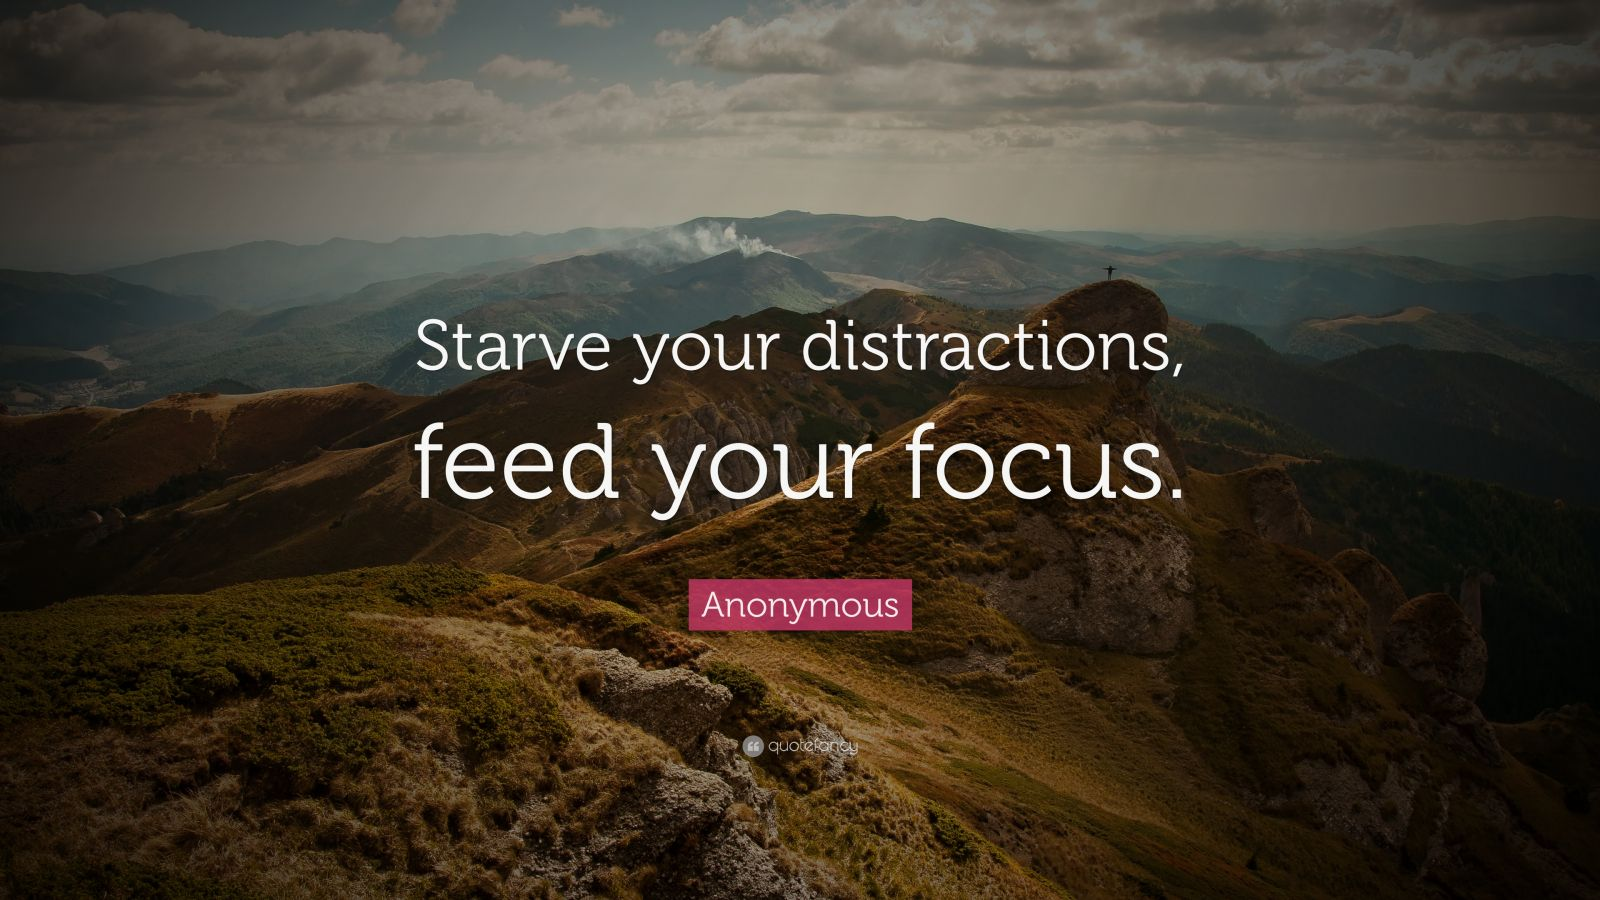 Business Success Quotes Wallpaper Anonymous Quote Starve Your Distractions Feed Your